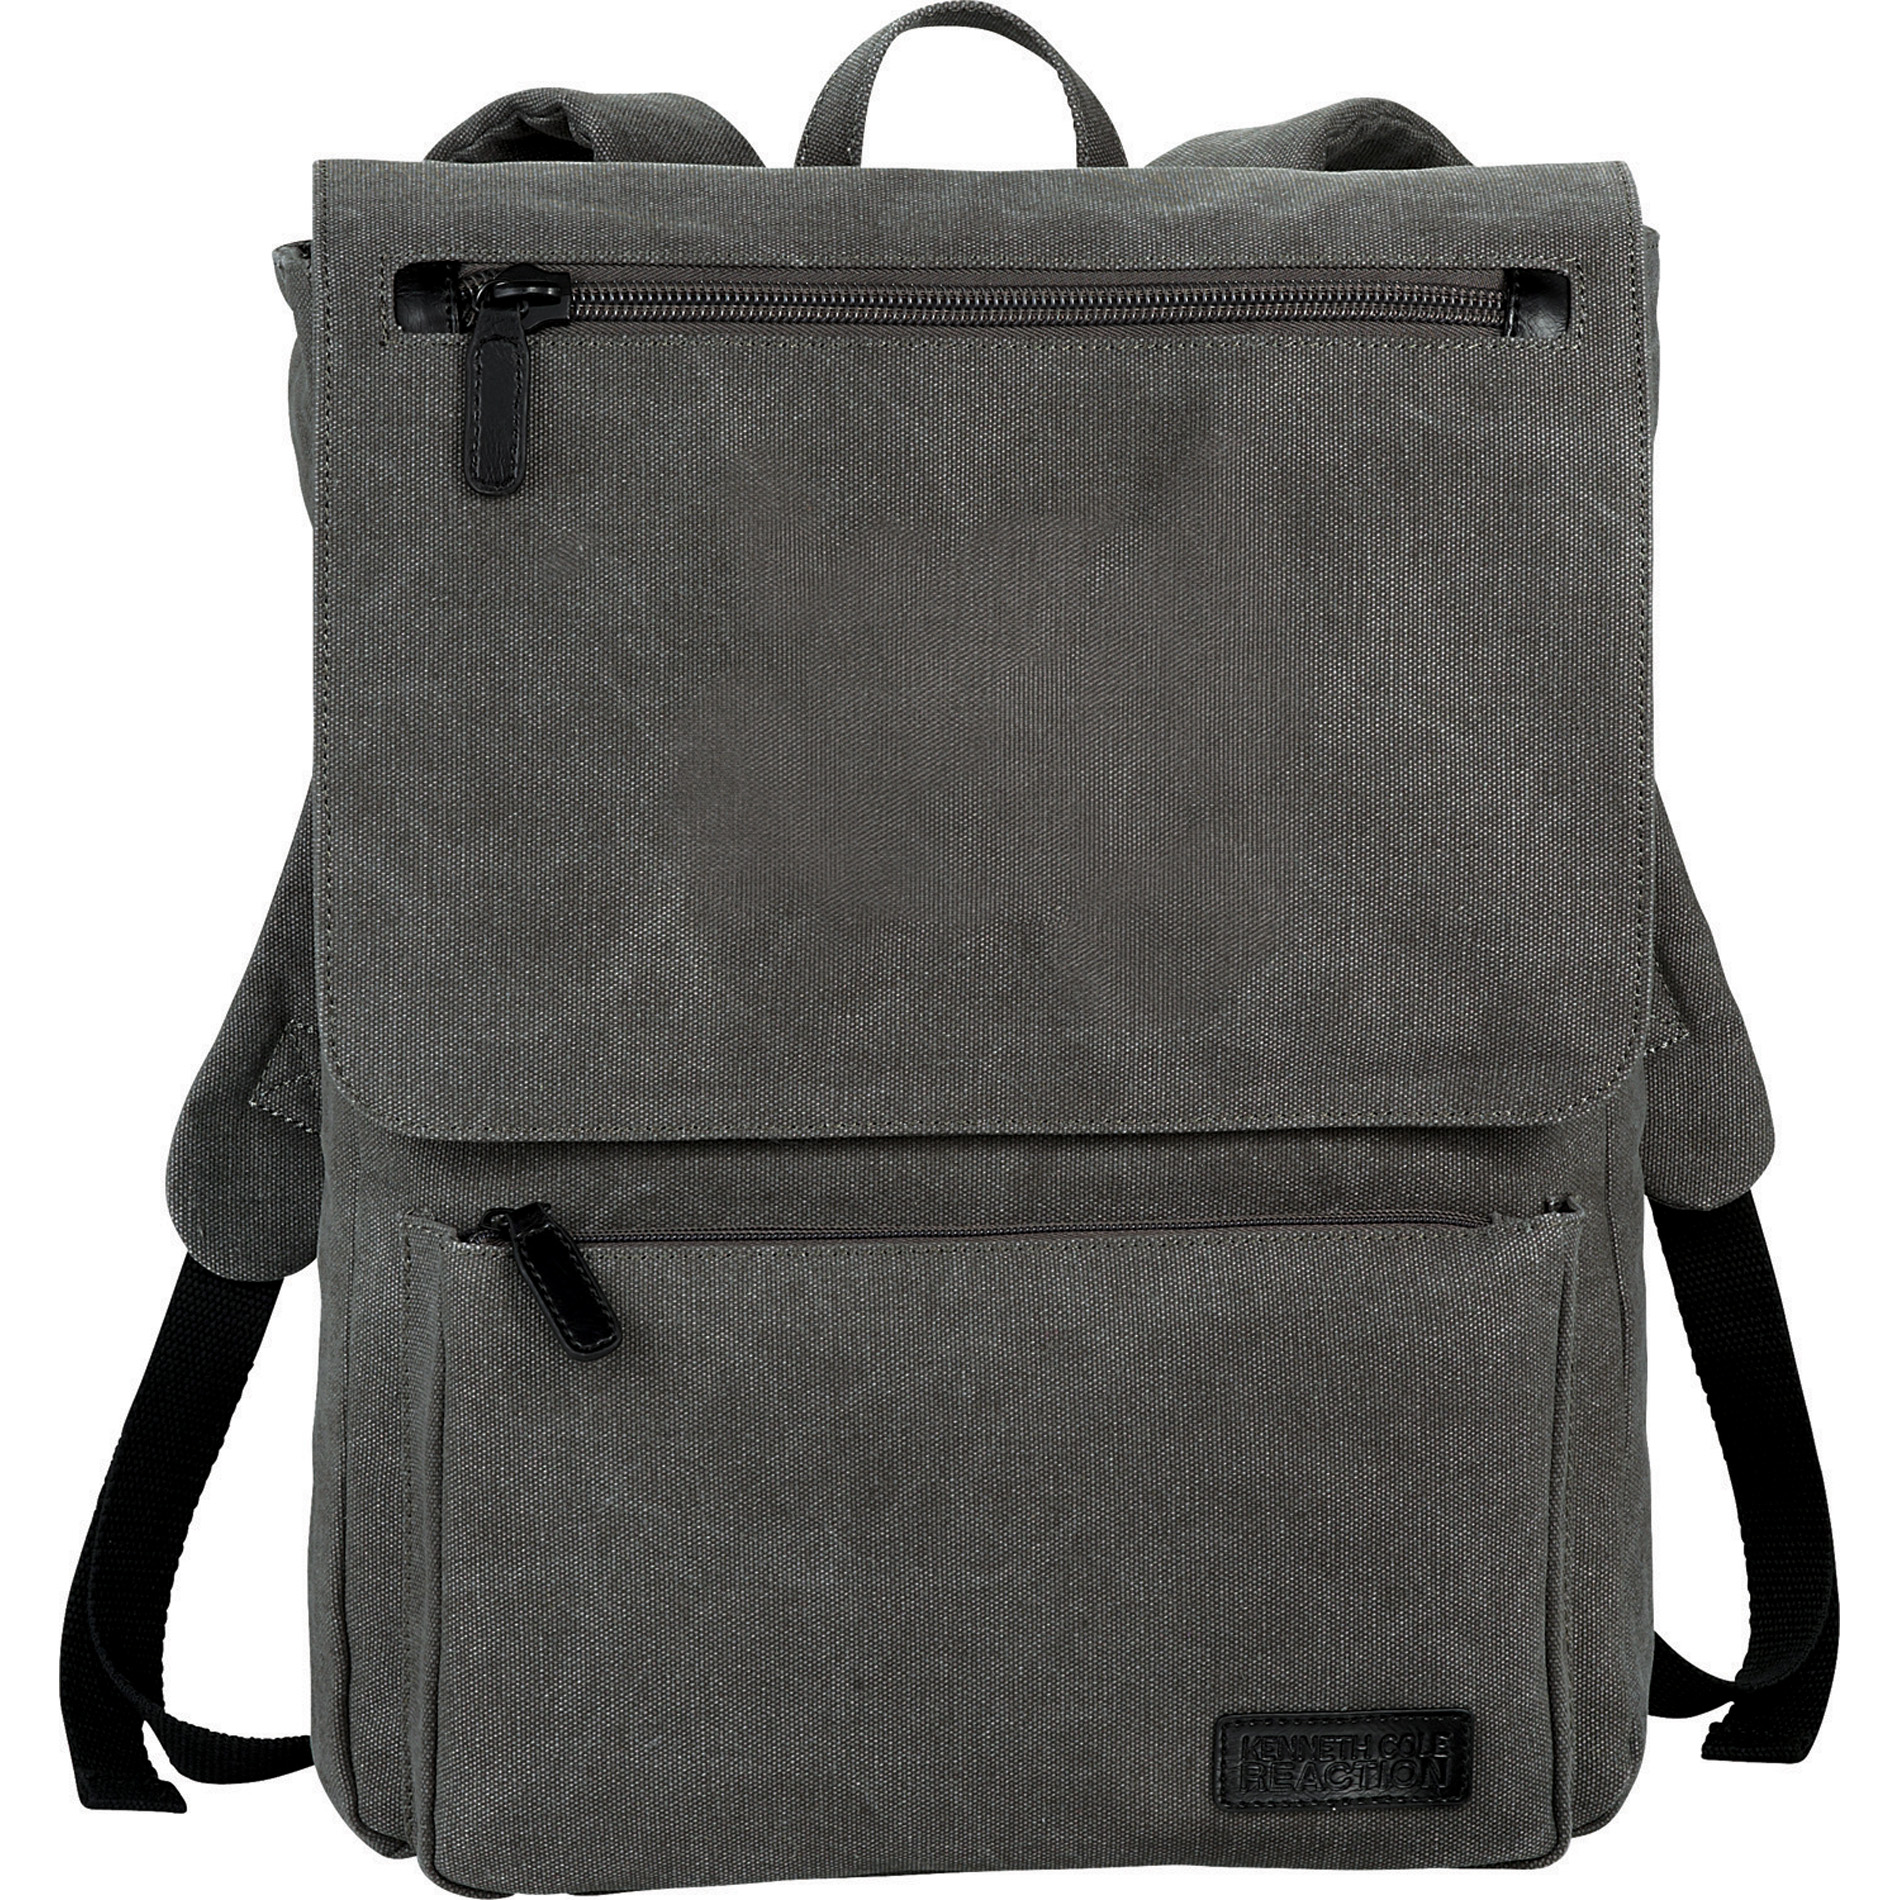 Kenneth Cole 9950-63 - Canvas 15 Computer Backpack